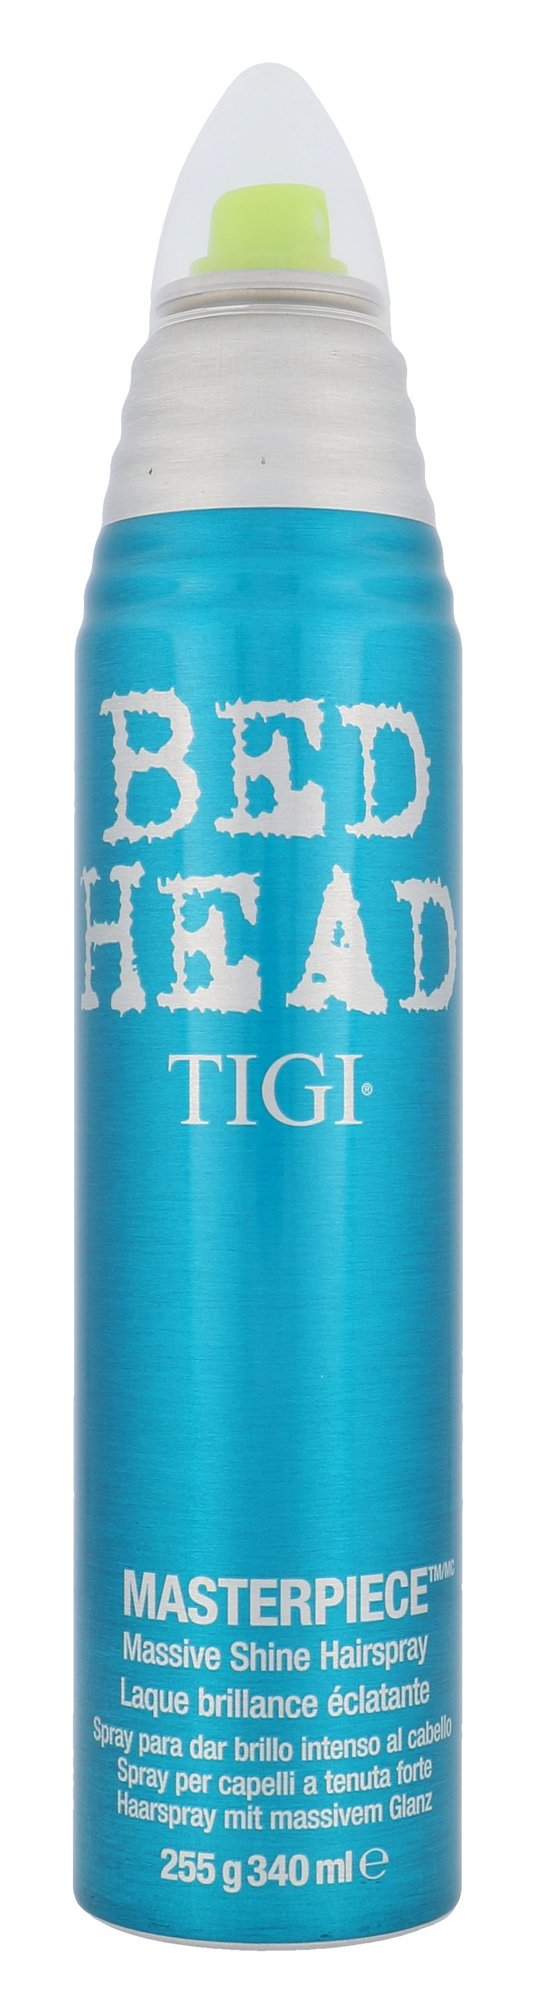 Tigi Bed Head Masterpiece Cosmetic 340ml